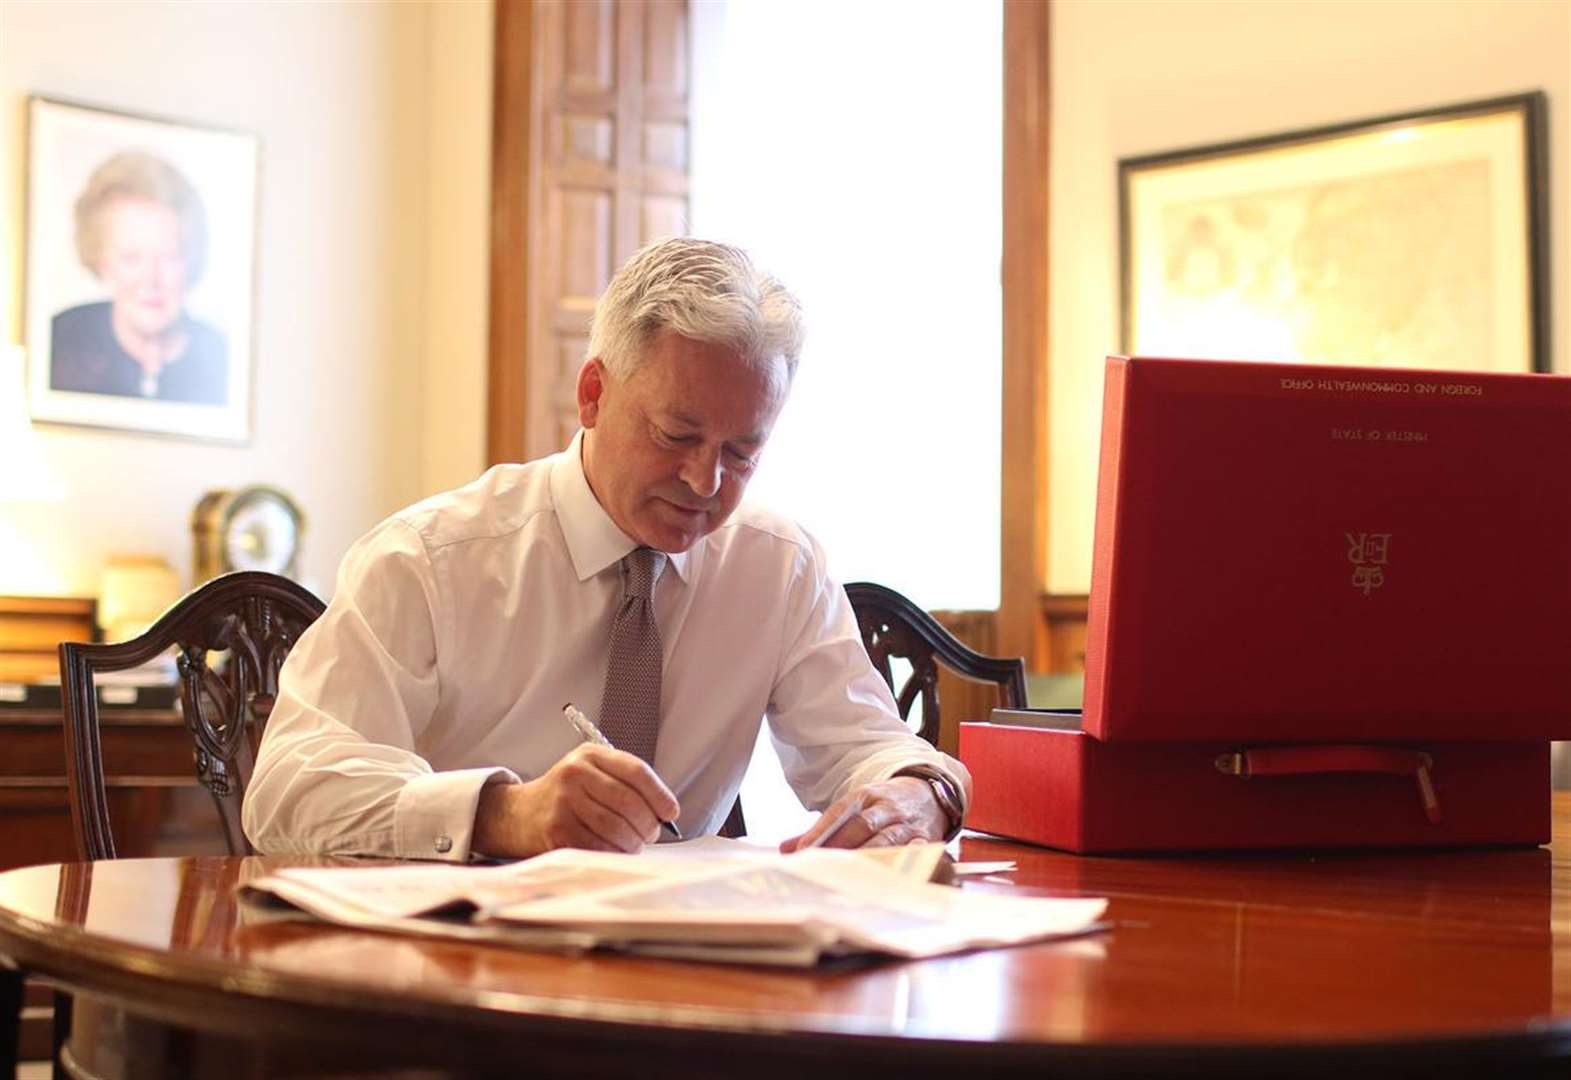 Rutland MP Alan Duncan trends on Twitter following President Trump comments